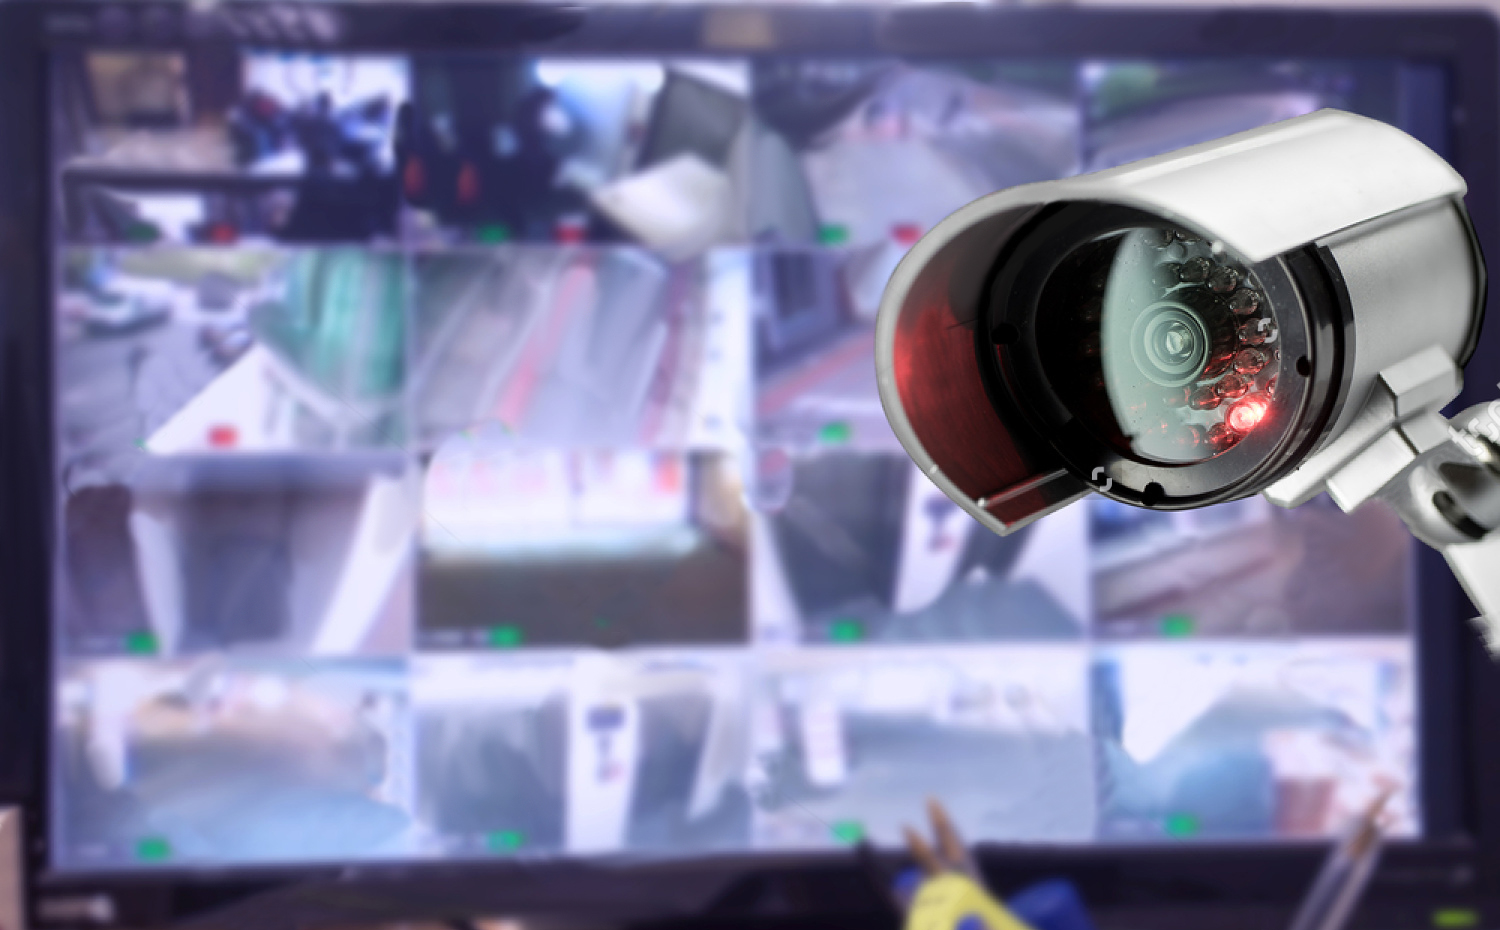 stock-photo-cctv-security-camera-monitor-in-office-building-278962550